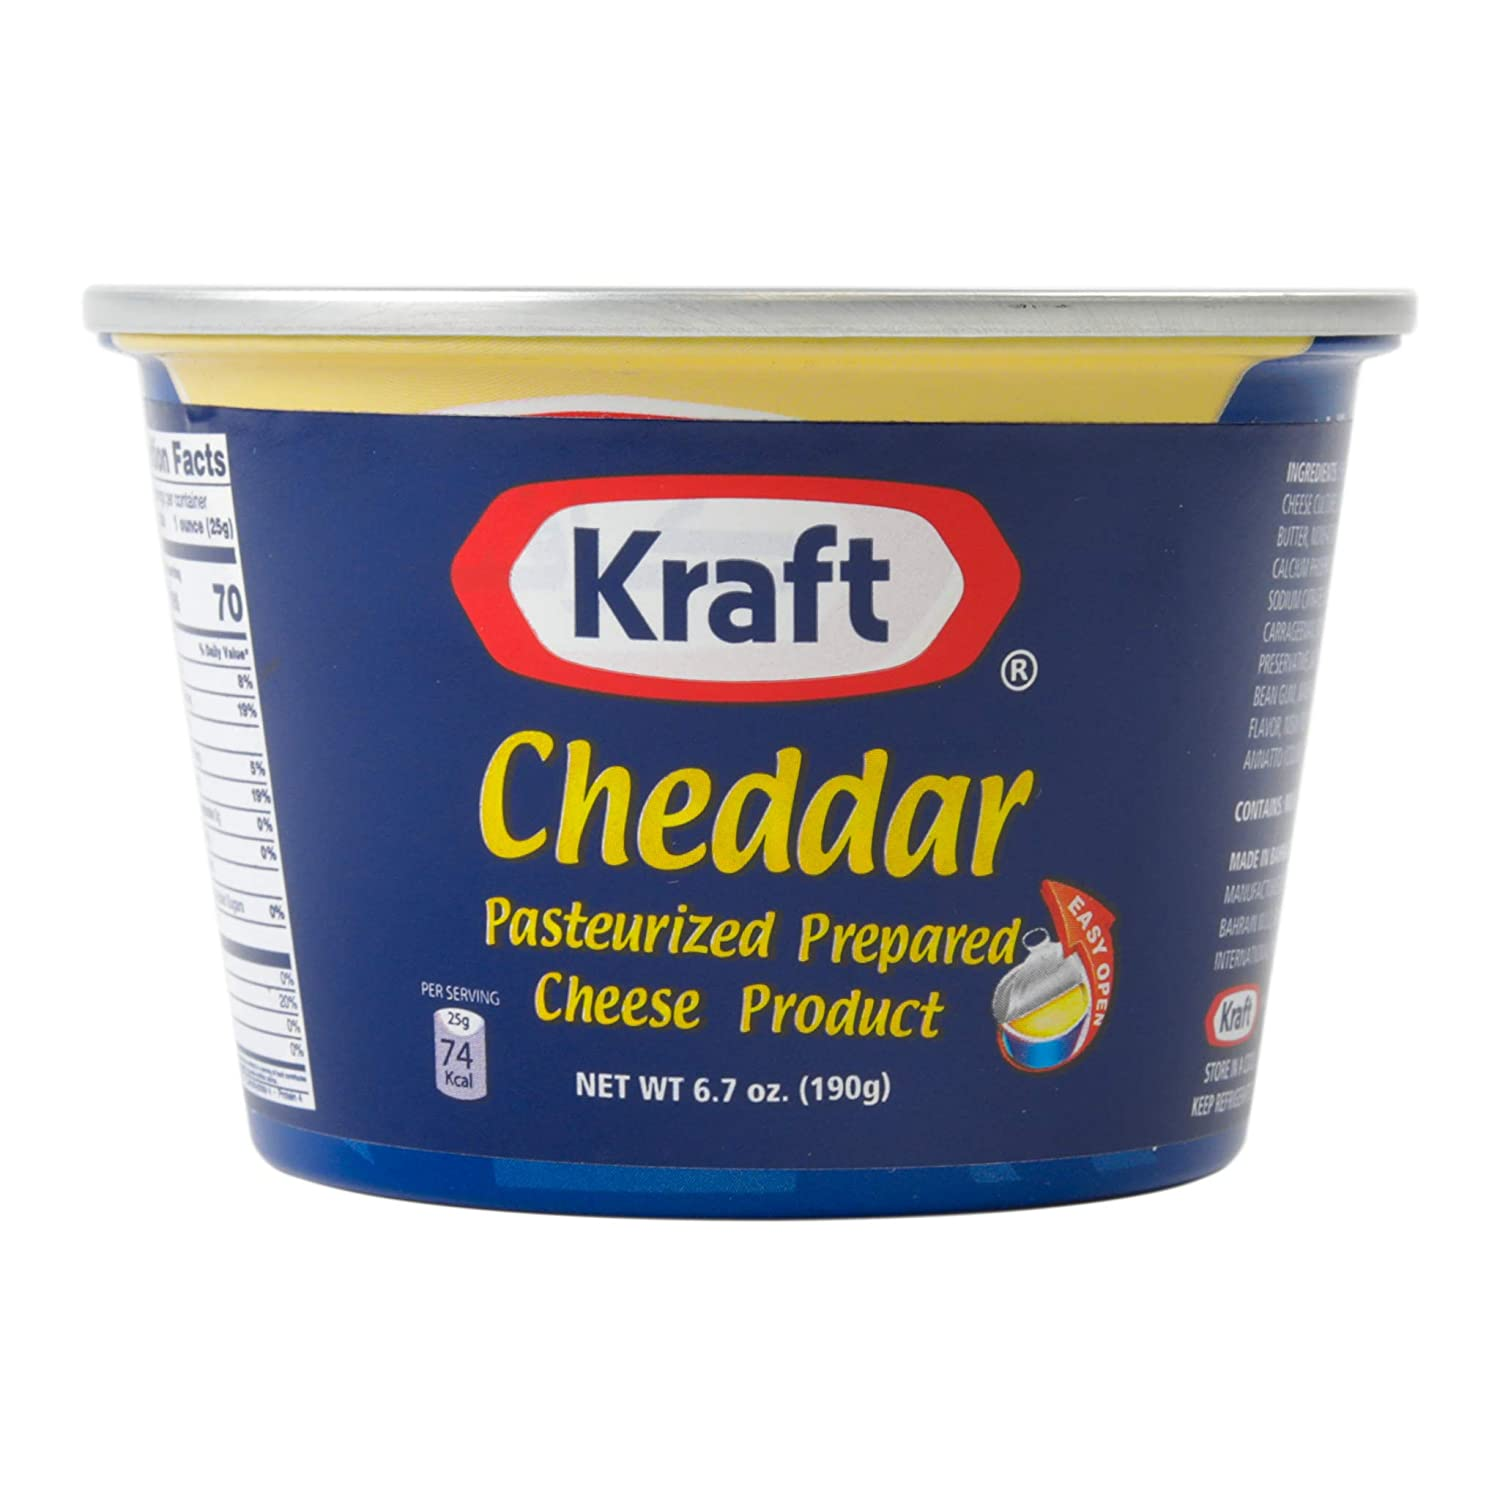 Kraft Prepared Pasturized Cheddar Cheese, Pantry Staple Cheese Spread for Crackers, 6.7oz Pack of 36